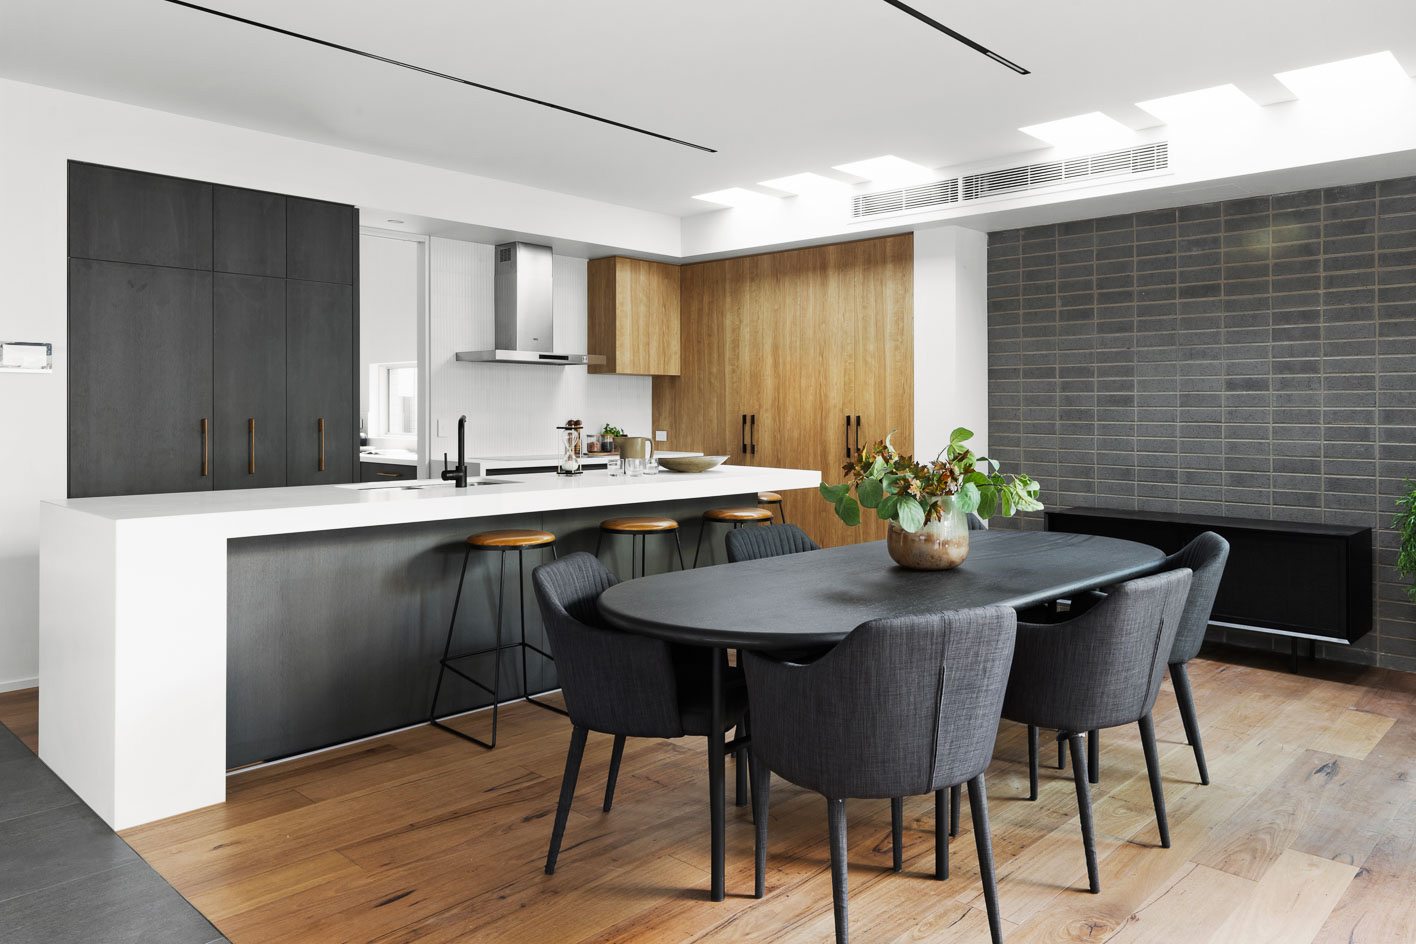 northcote kitchens